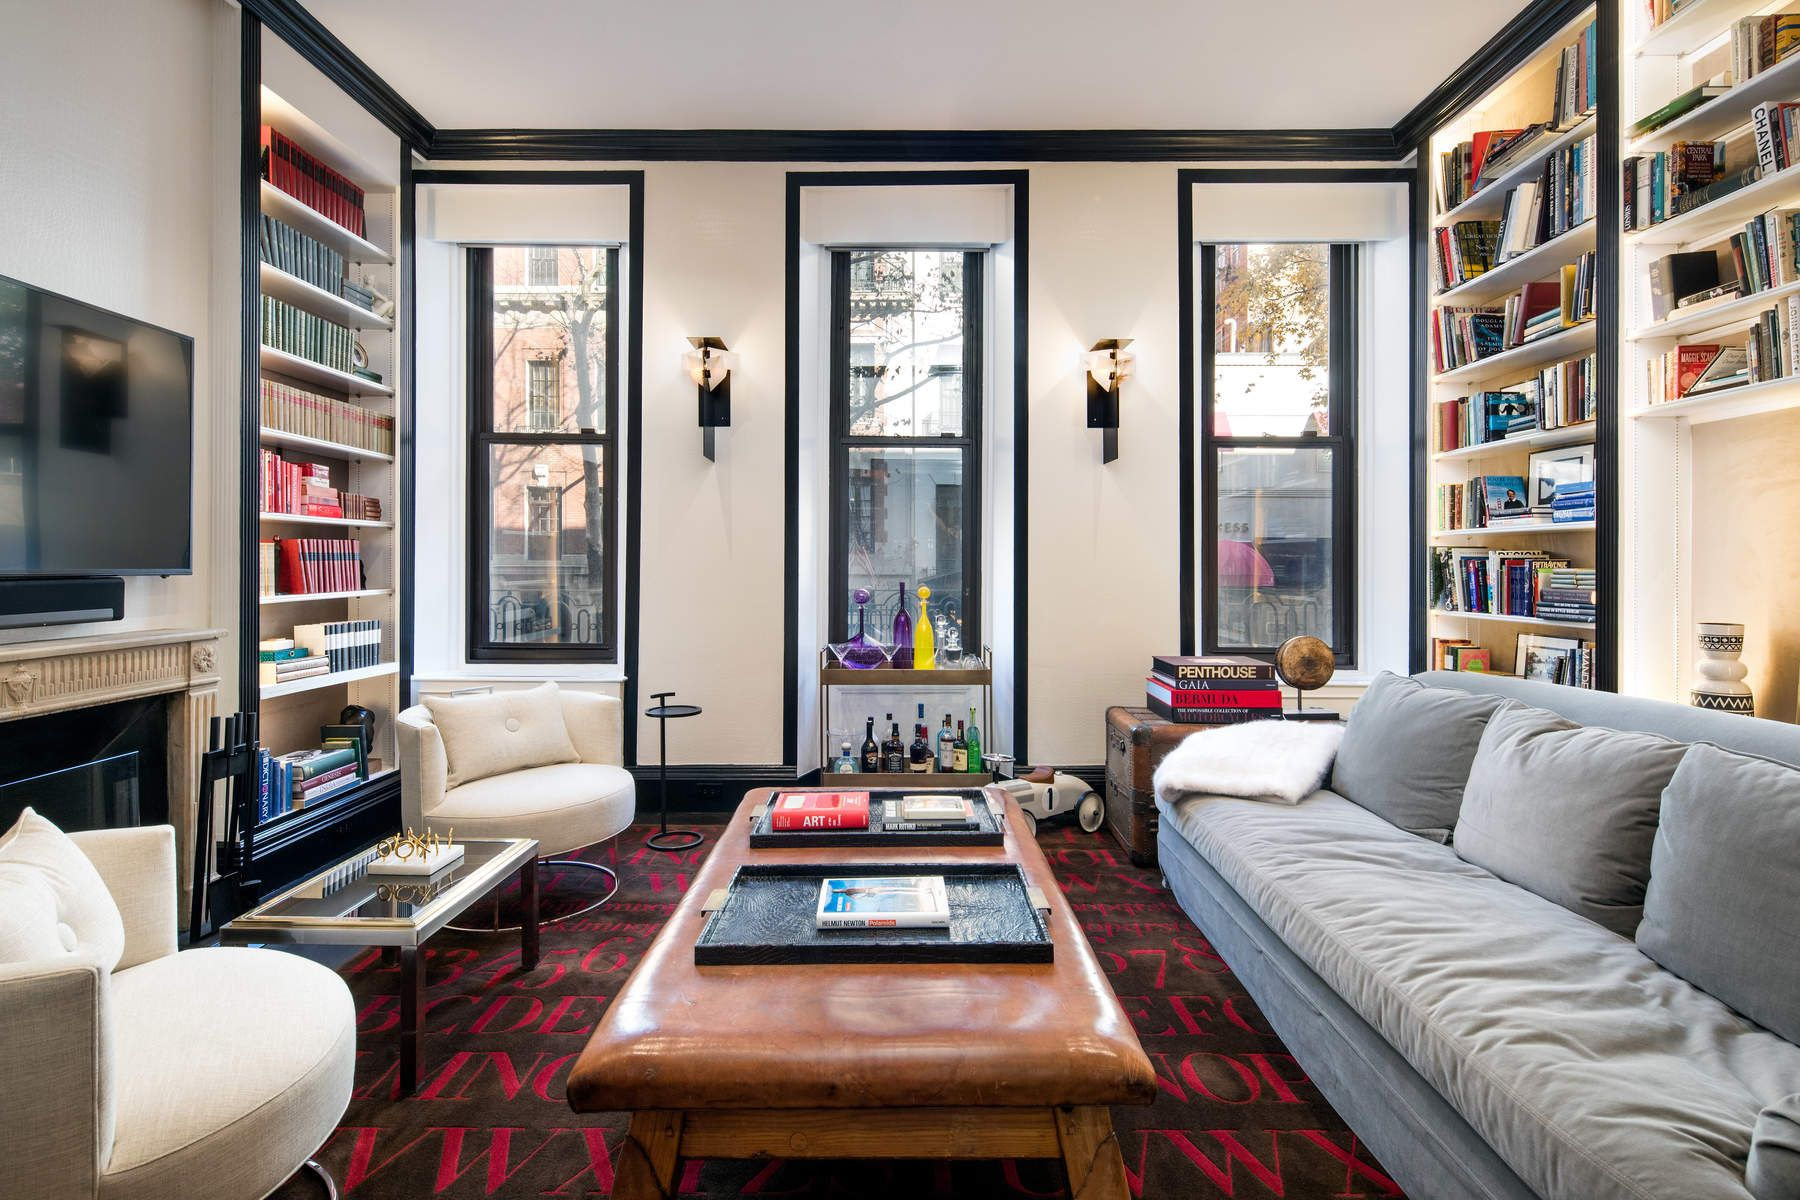 Additional photo for property listing at 132 East 62nd Street 132 East 62nd Street New York, New York 10065 United States